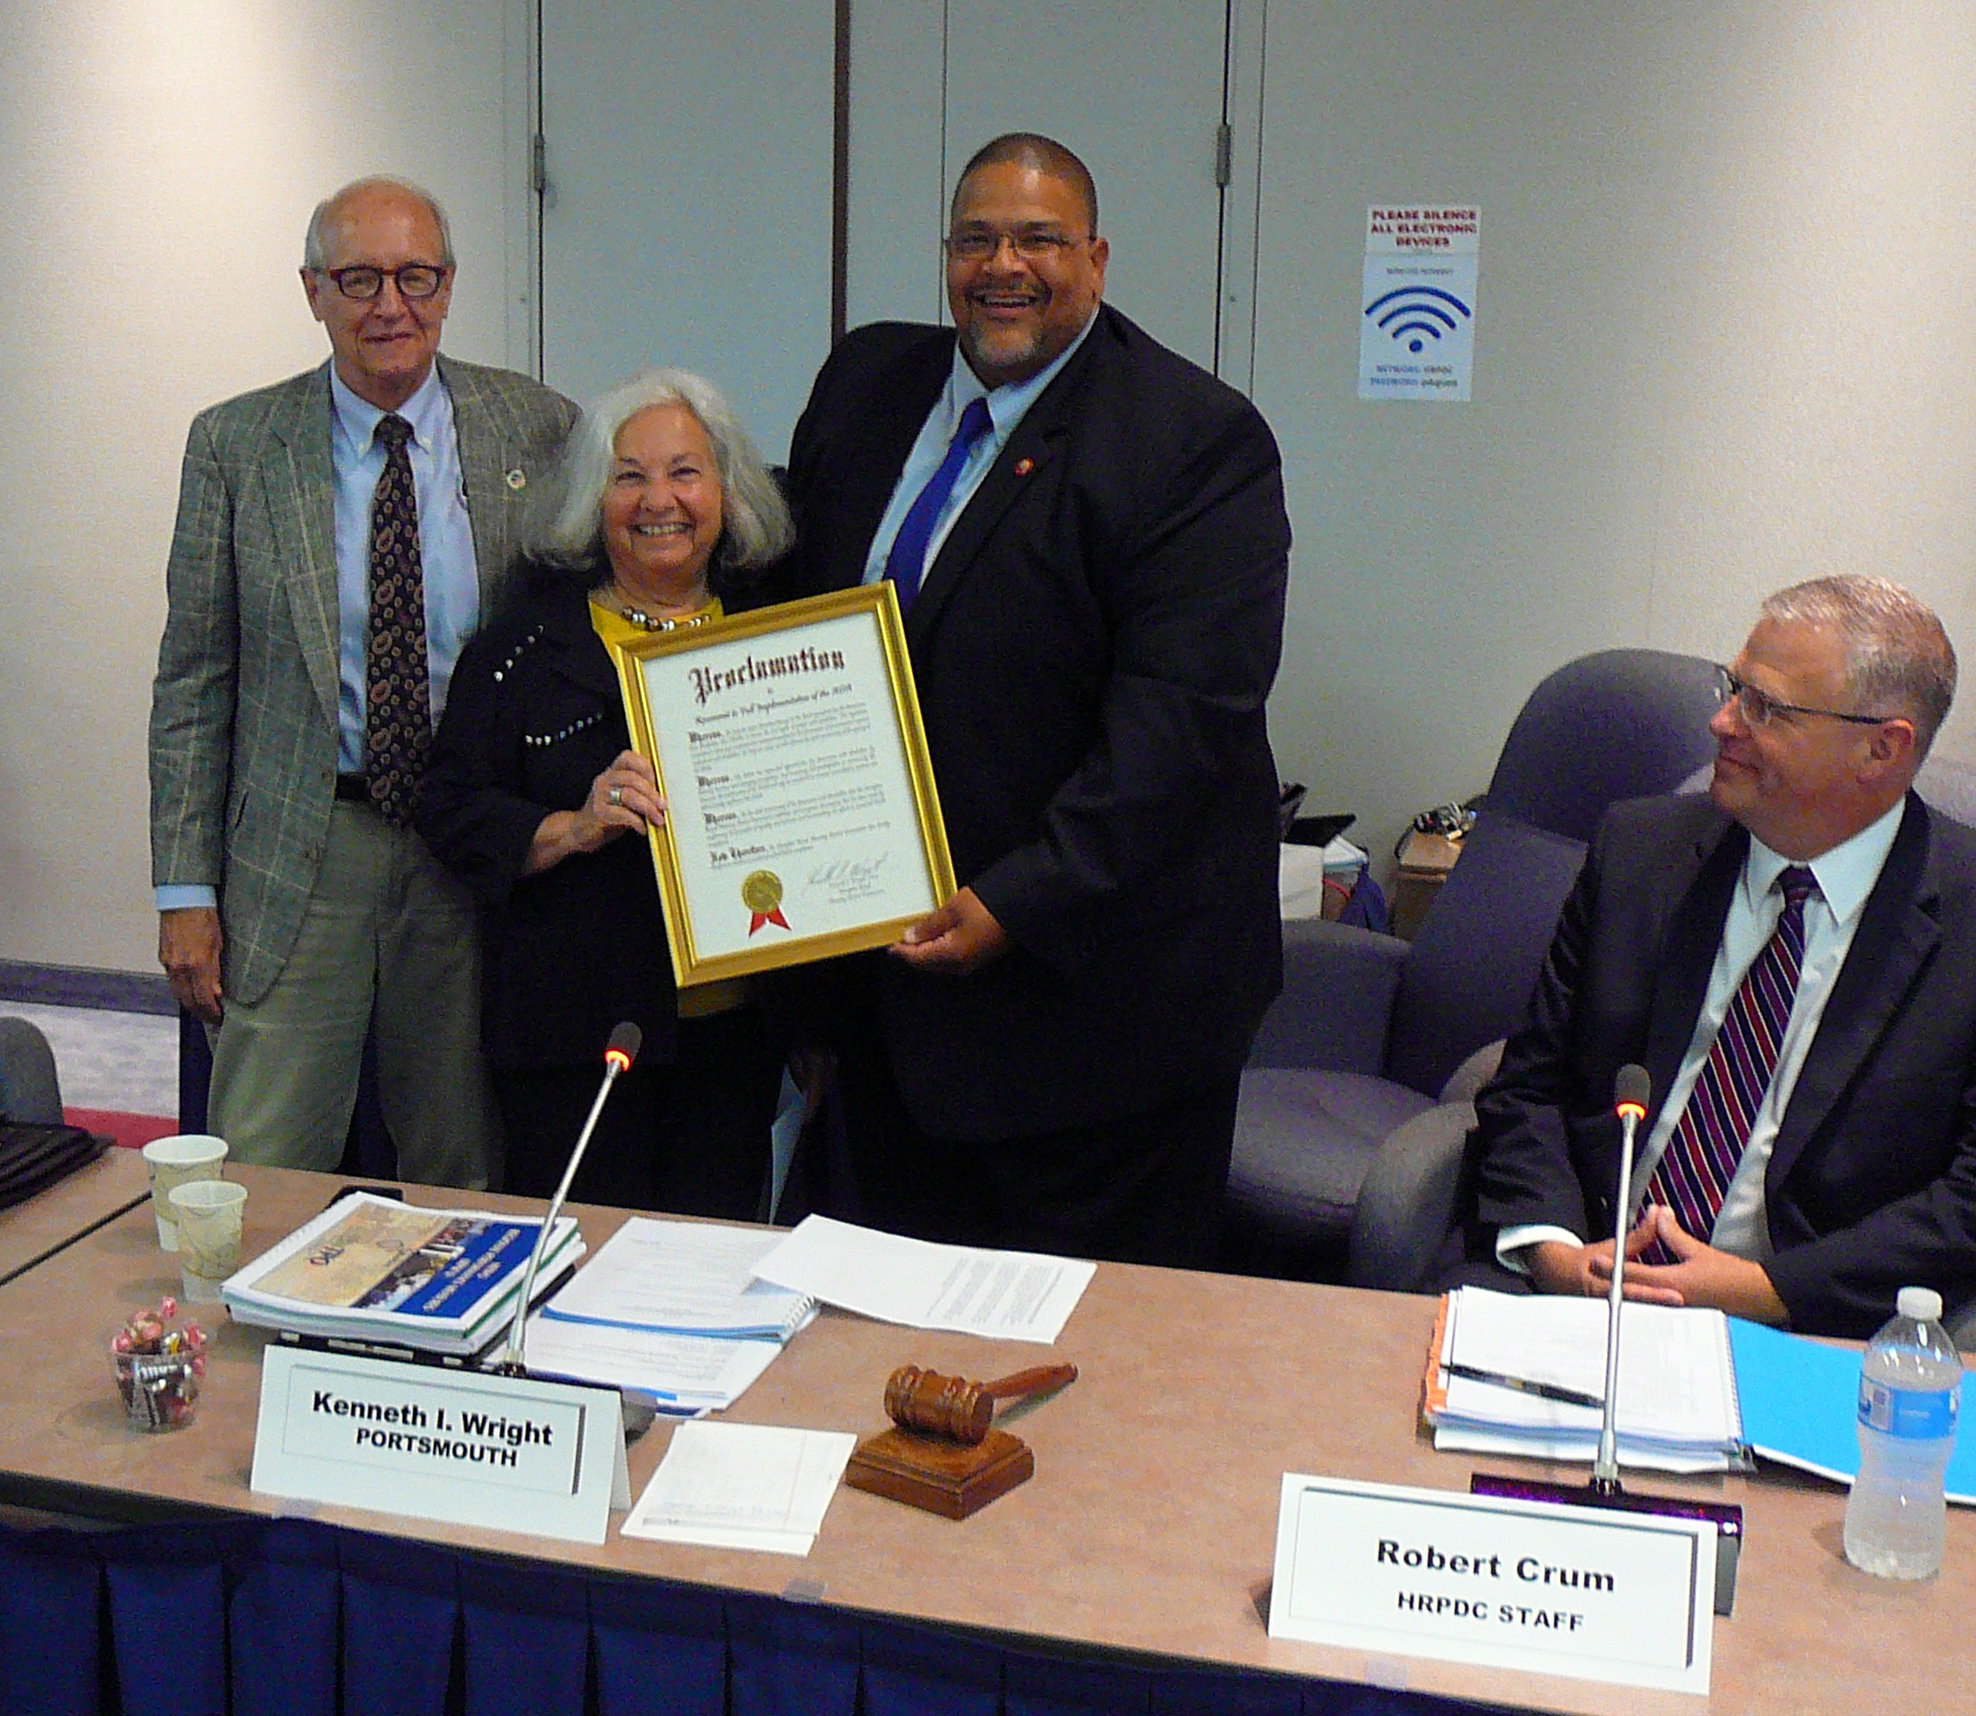 HRDB Chair, Shirley Confino-Rehder accepted the proclamation from HRPDC Chair Kenneth Wright and Vice-Chair Clyde Haulman as HRPDC Executive Director Robert Crum looks on.